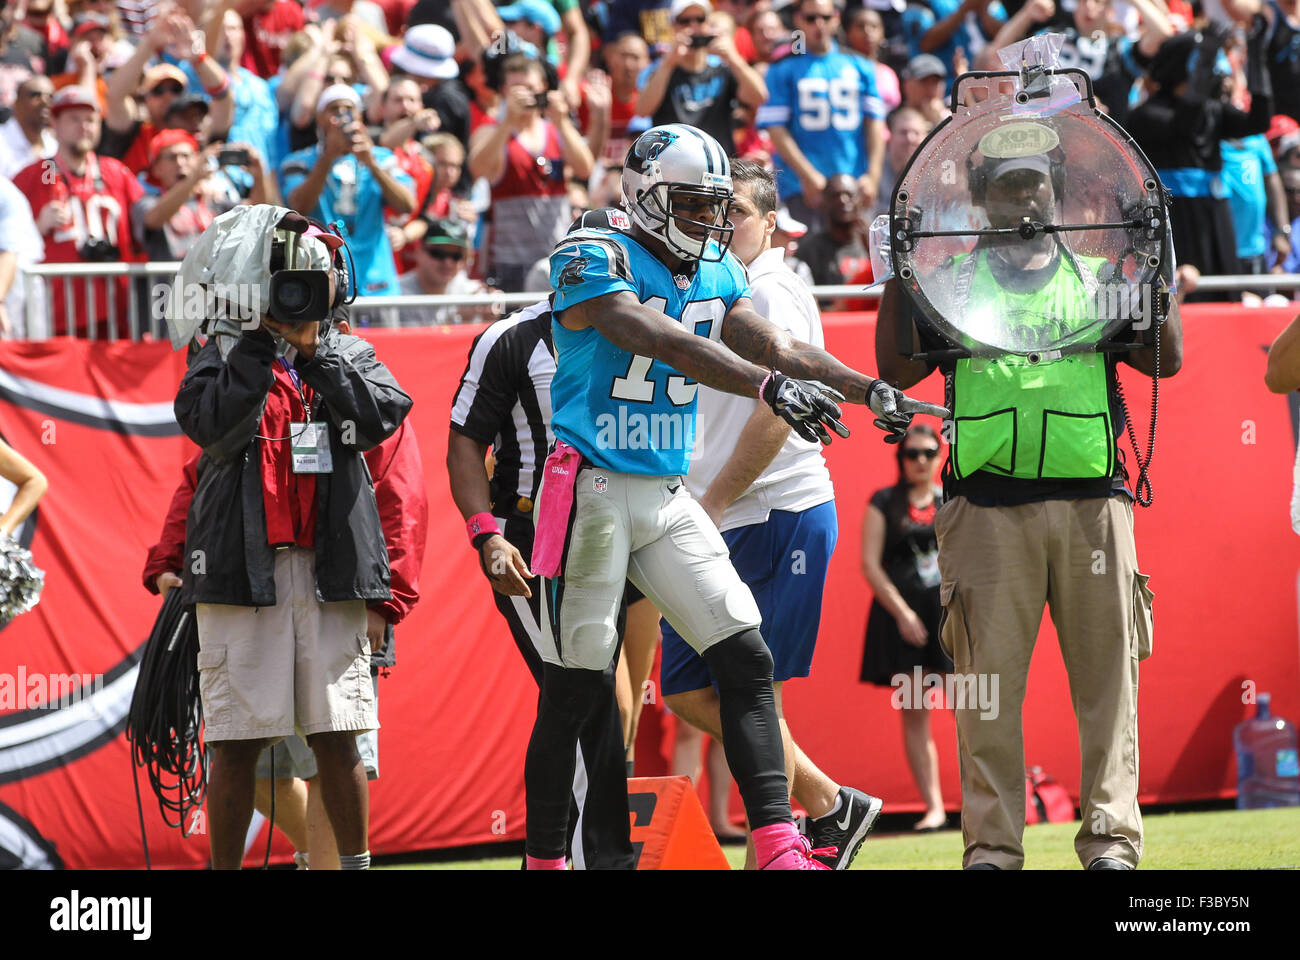 Tampa Bay, Florida, USA. 4th October, 2015. Carolina Panthers wide receiver Ted Ginn #19 points to the pylon on Stock Photo